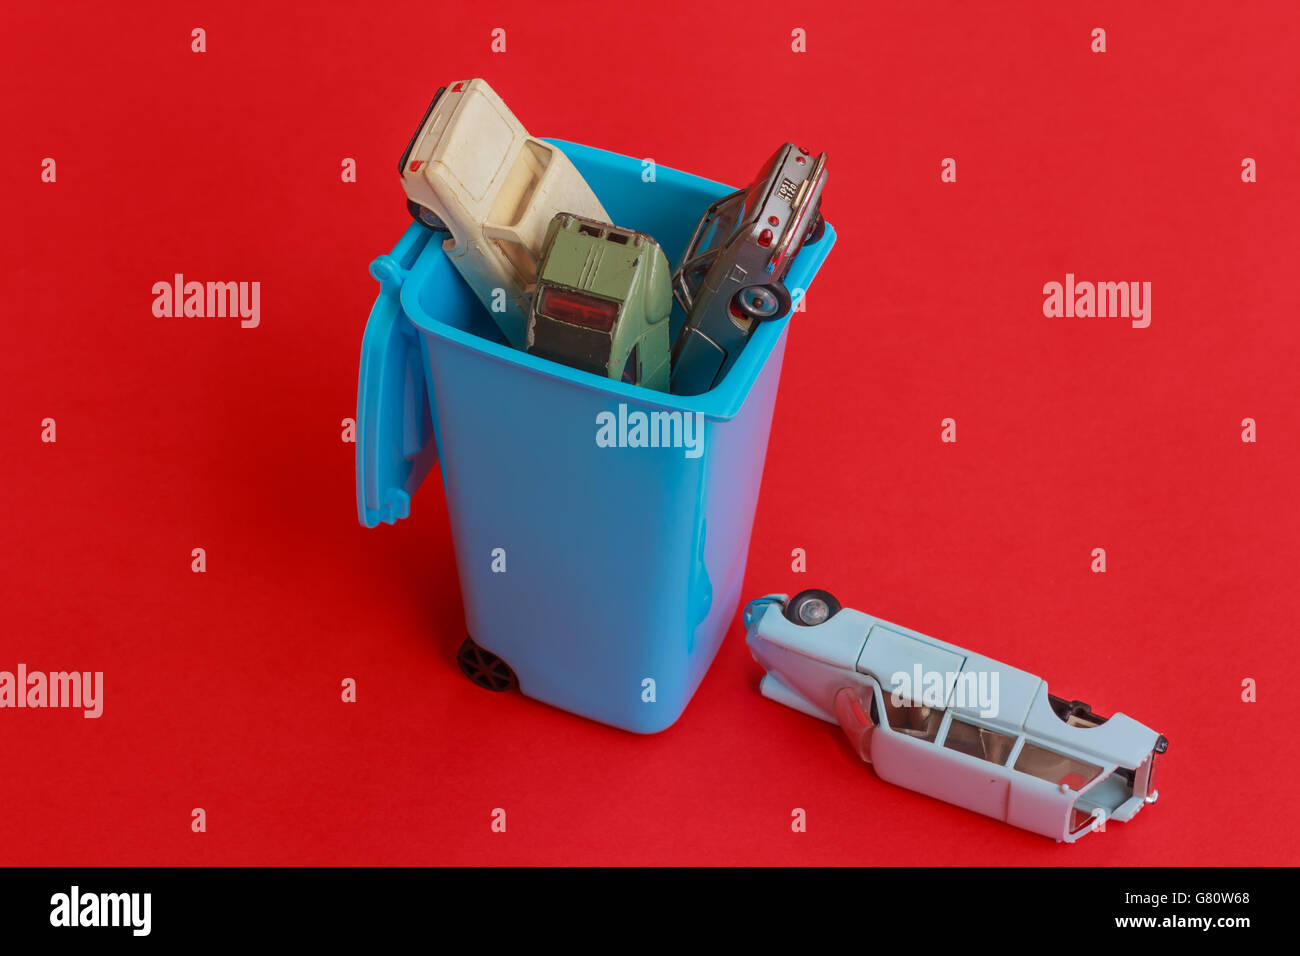 a garbage can inside with four cars that need to be scrapped - Stock Image